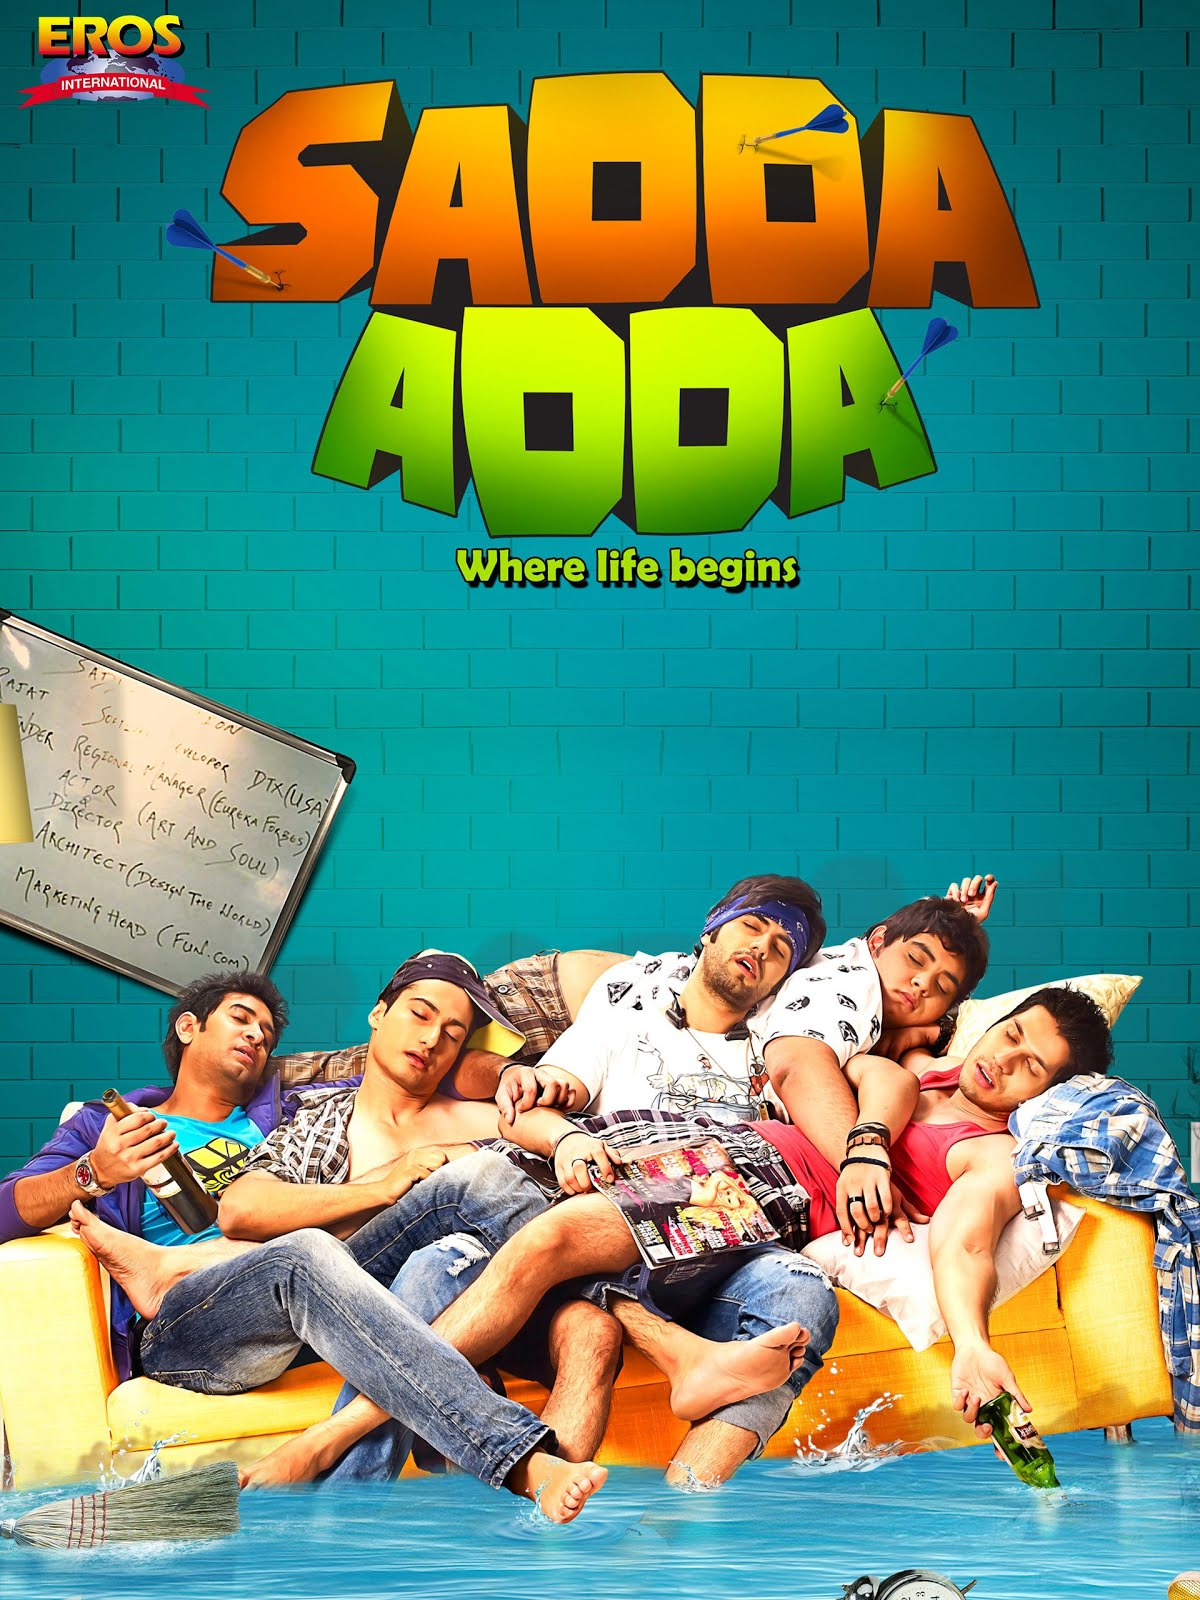 Sadda Adda 2012 Hindi Movie 720p HDRip 800MB ESubs